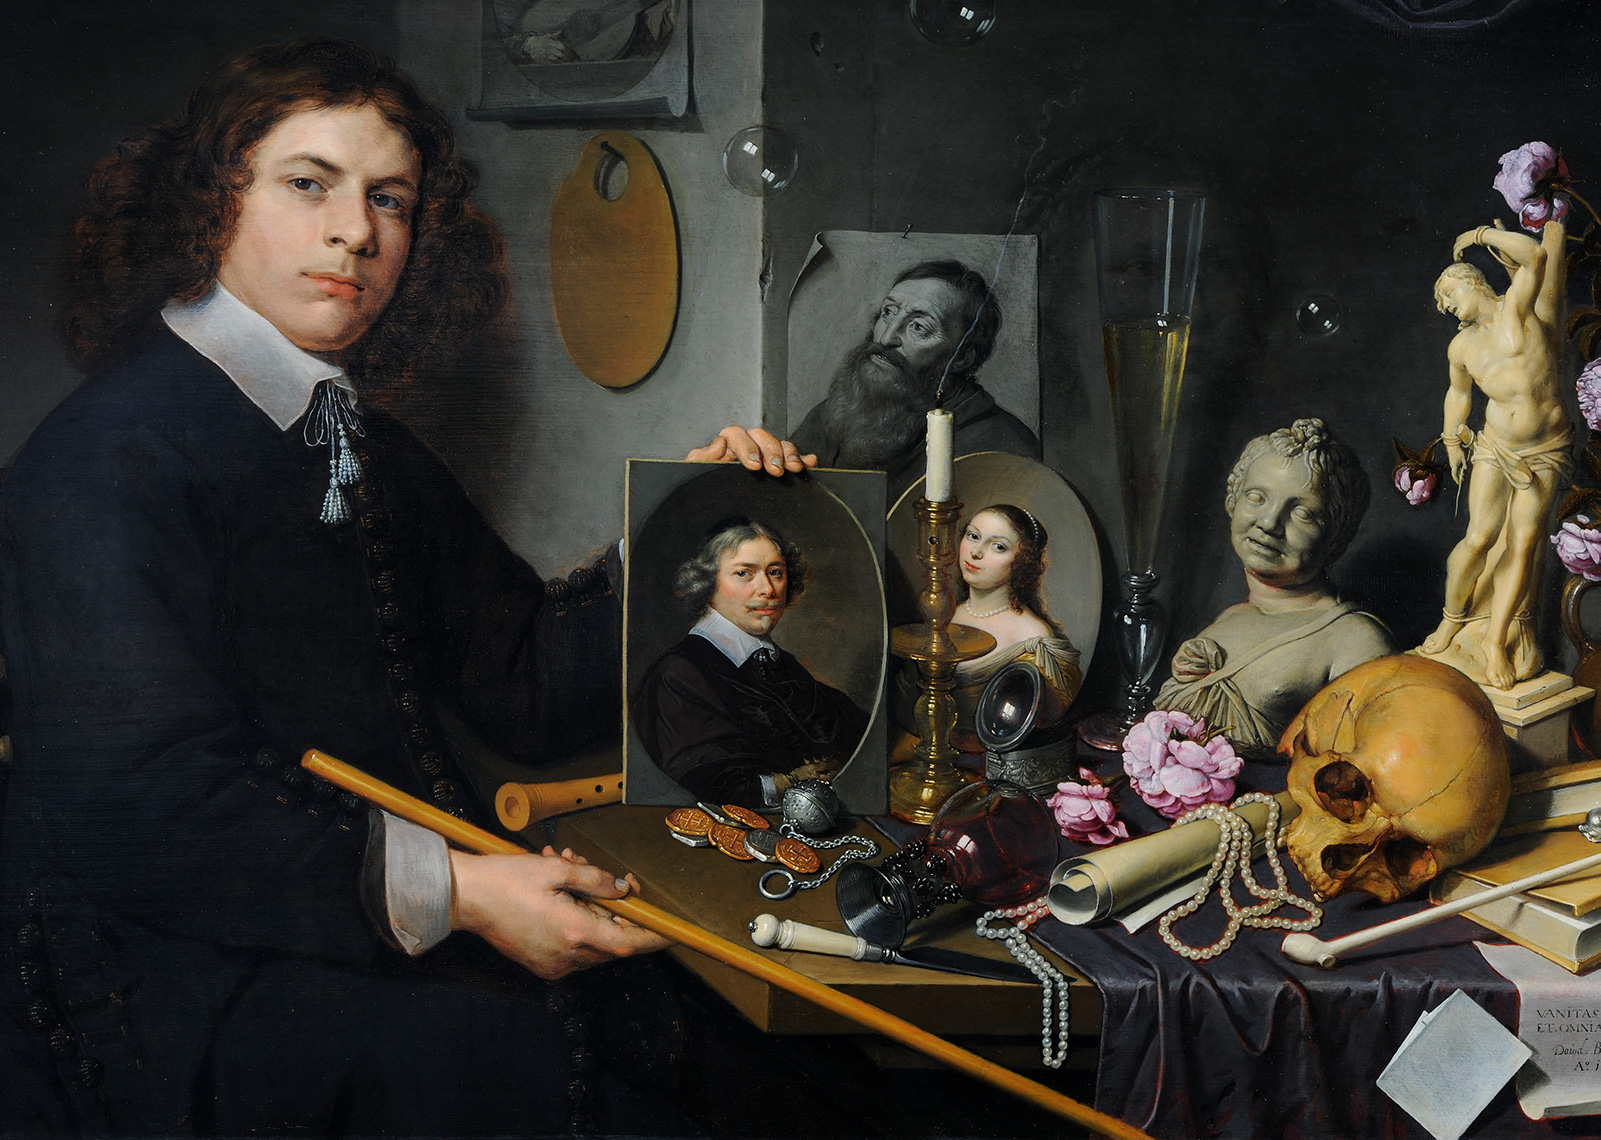 Painting of artist seated at table covered with portraits, sculpture, books, and various tools